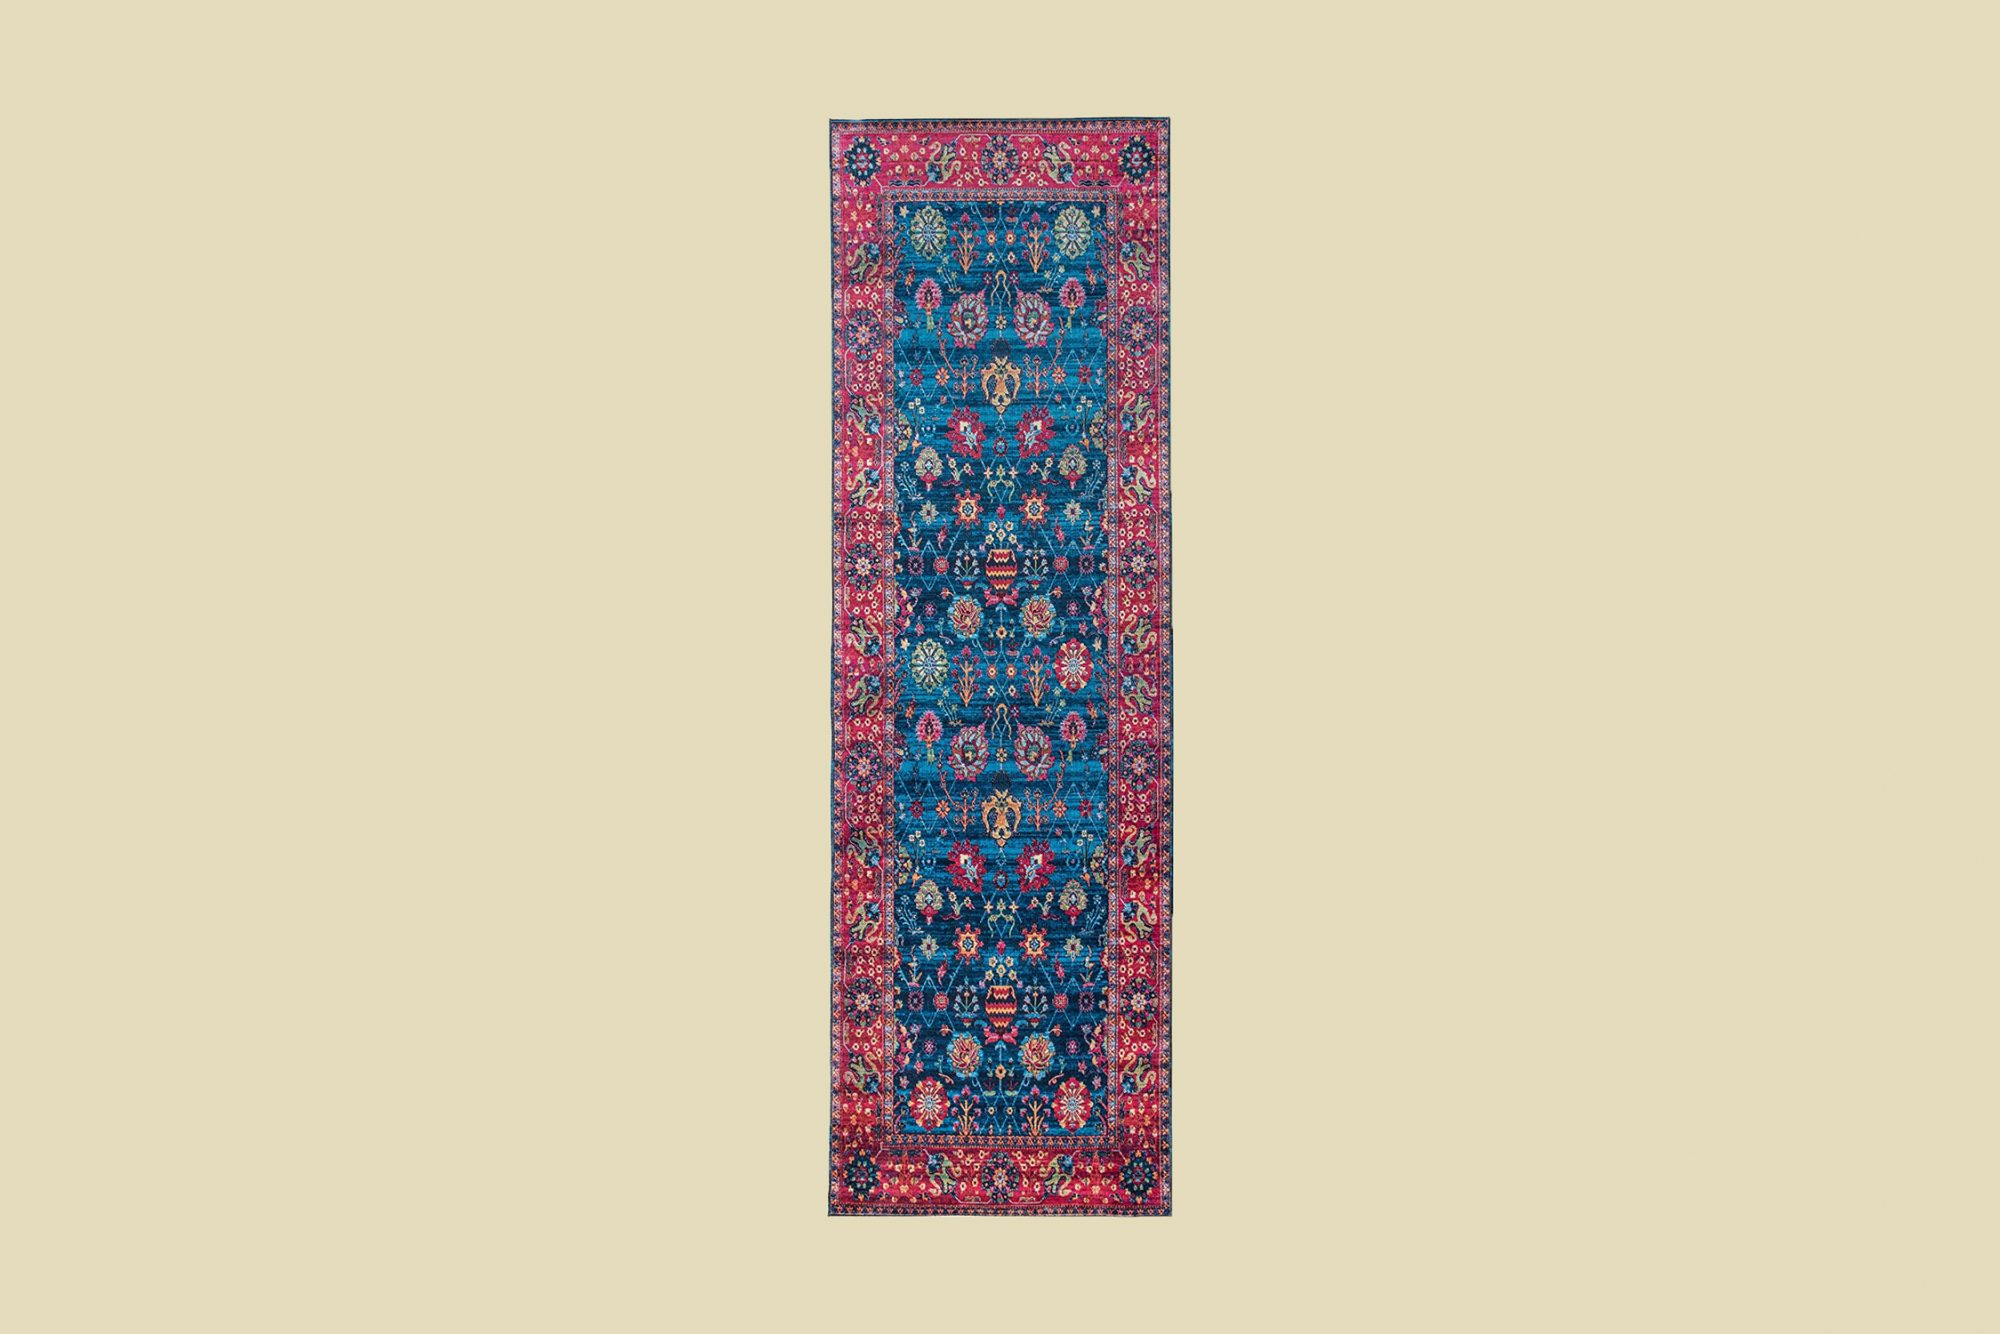 Mylife Rugs Traditional Vintage Non-Slip Machine Washable Printed Rug in Blue Hot Pink